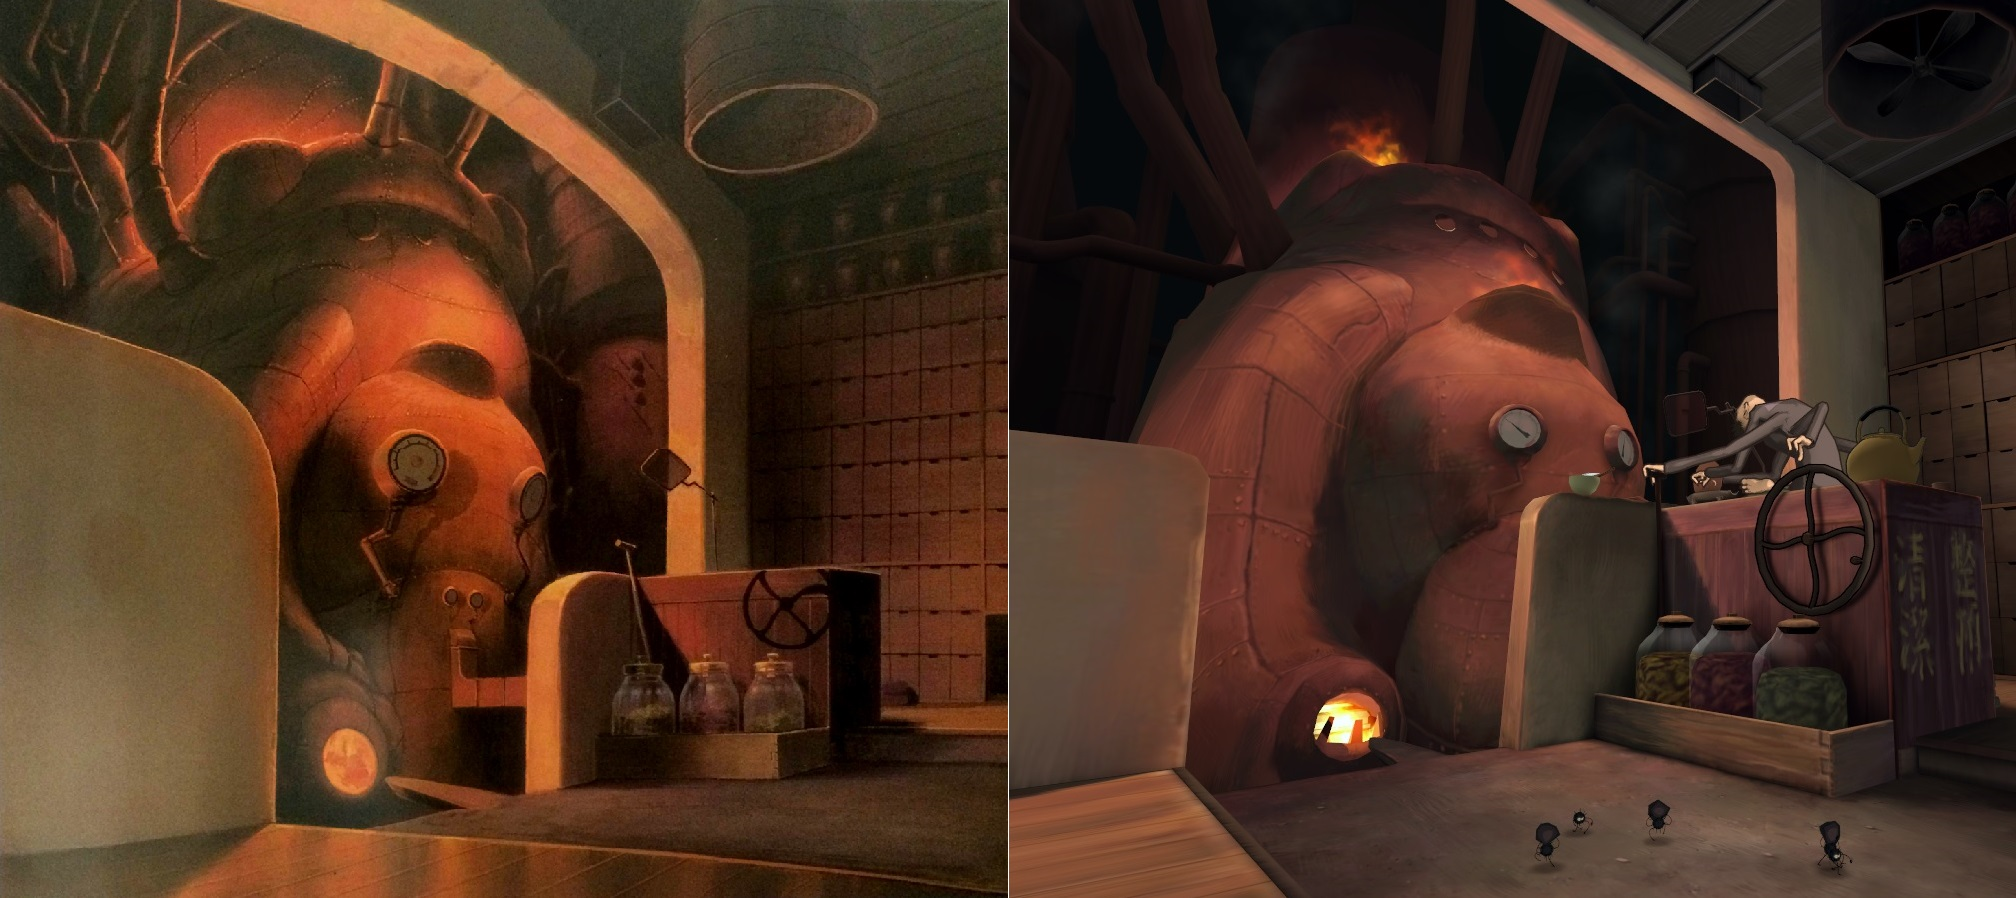 [Gambar: Screenshot dari animasi Spirited Away (kiri), dan versi virtual realitynya (kanan) | via roadtovr.com]